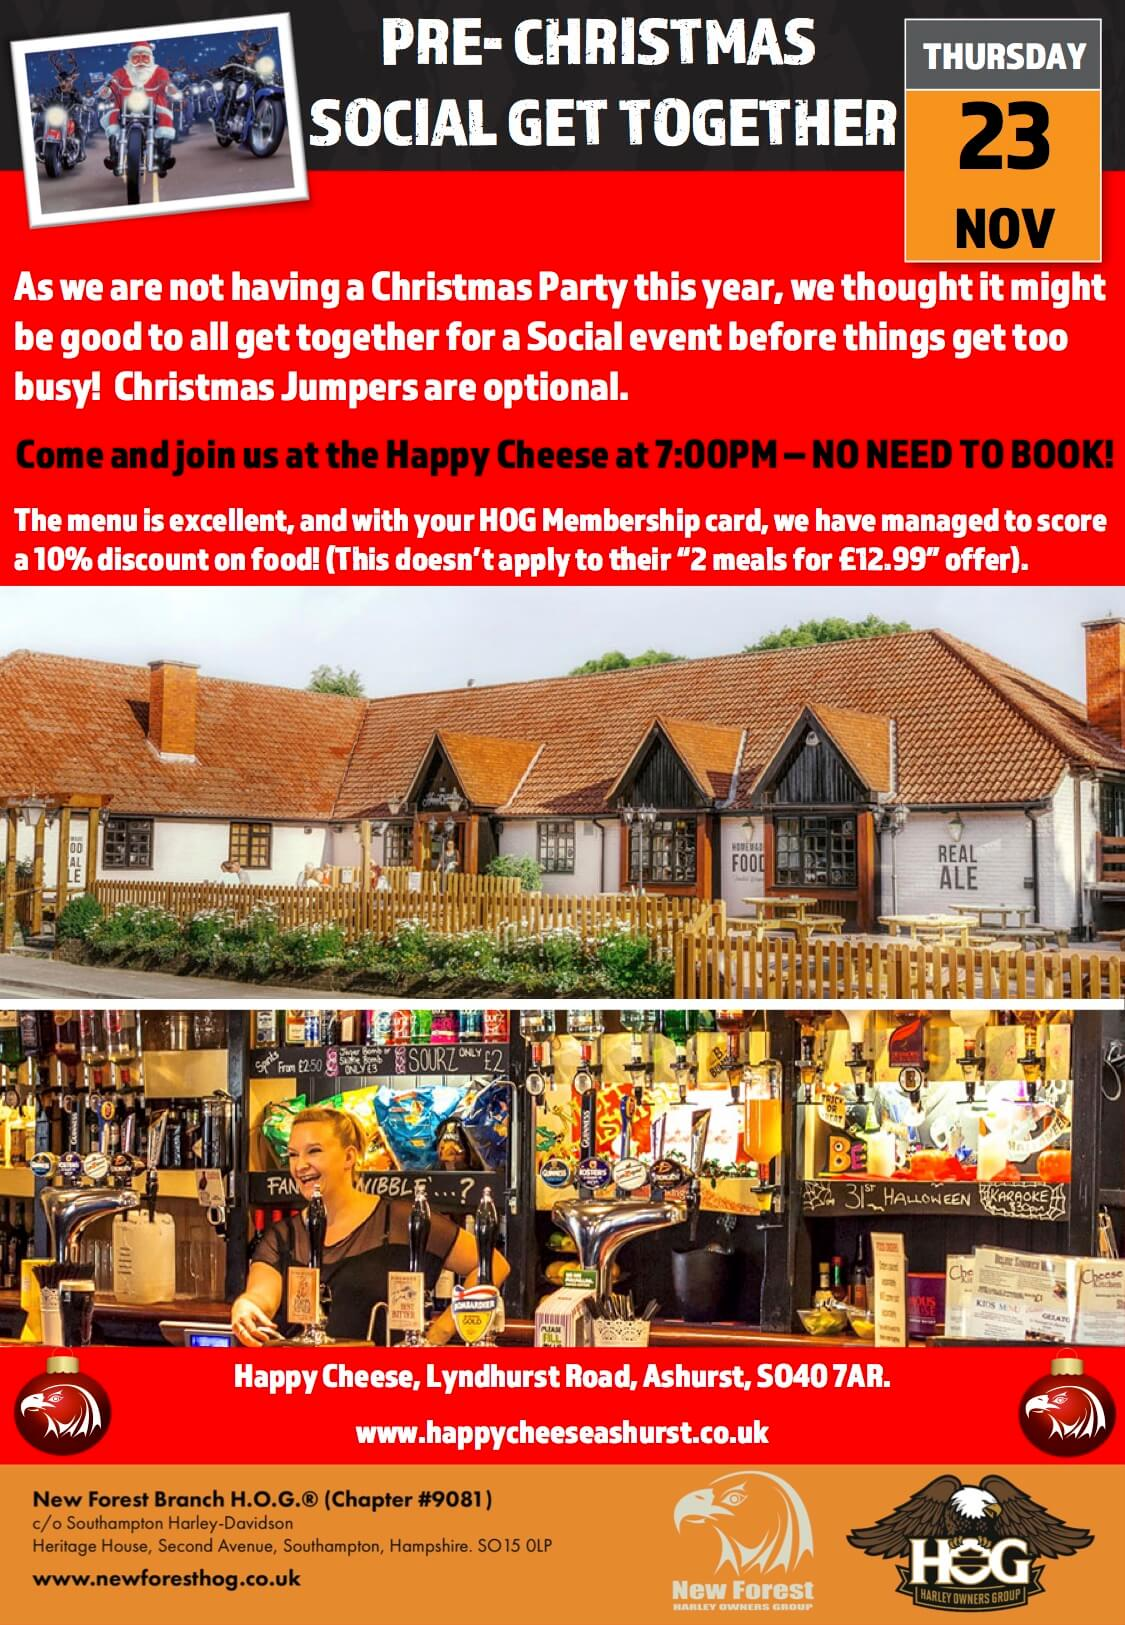 Pre-Christmas Social Get Together | New Forest Chapter #9081